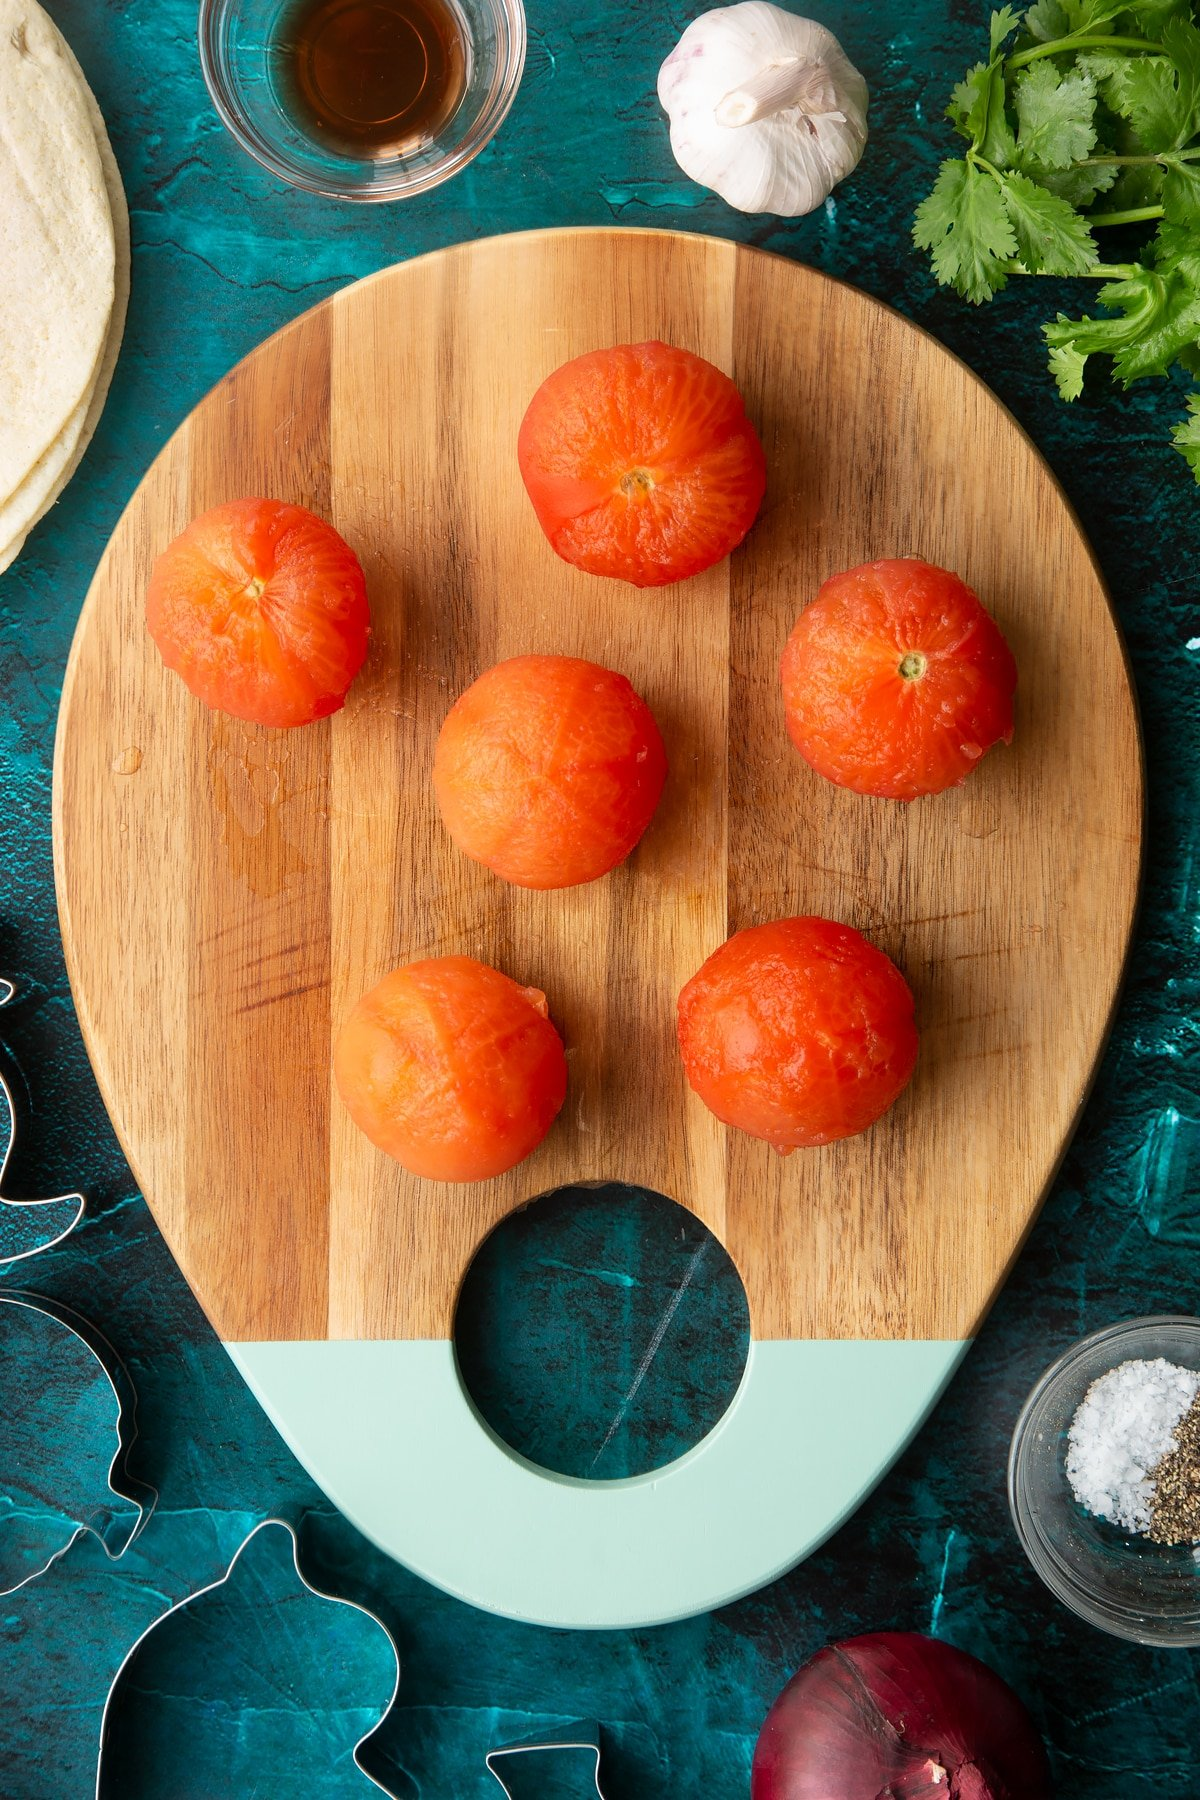 Peeled tomatoes on a wooden board.